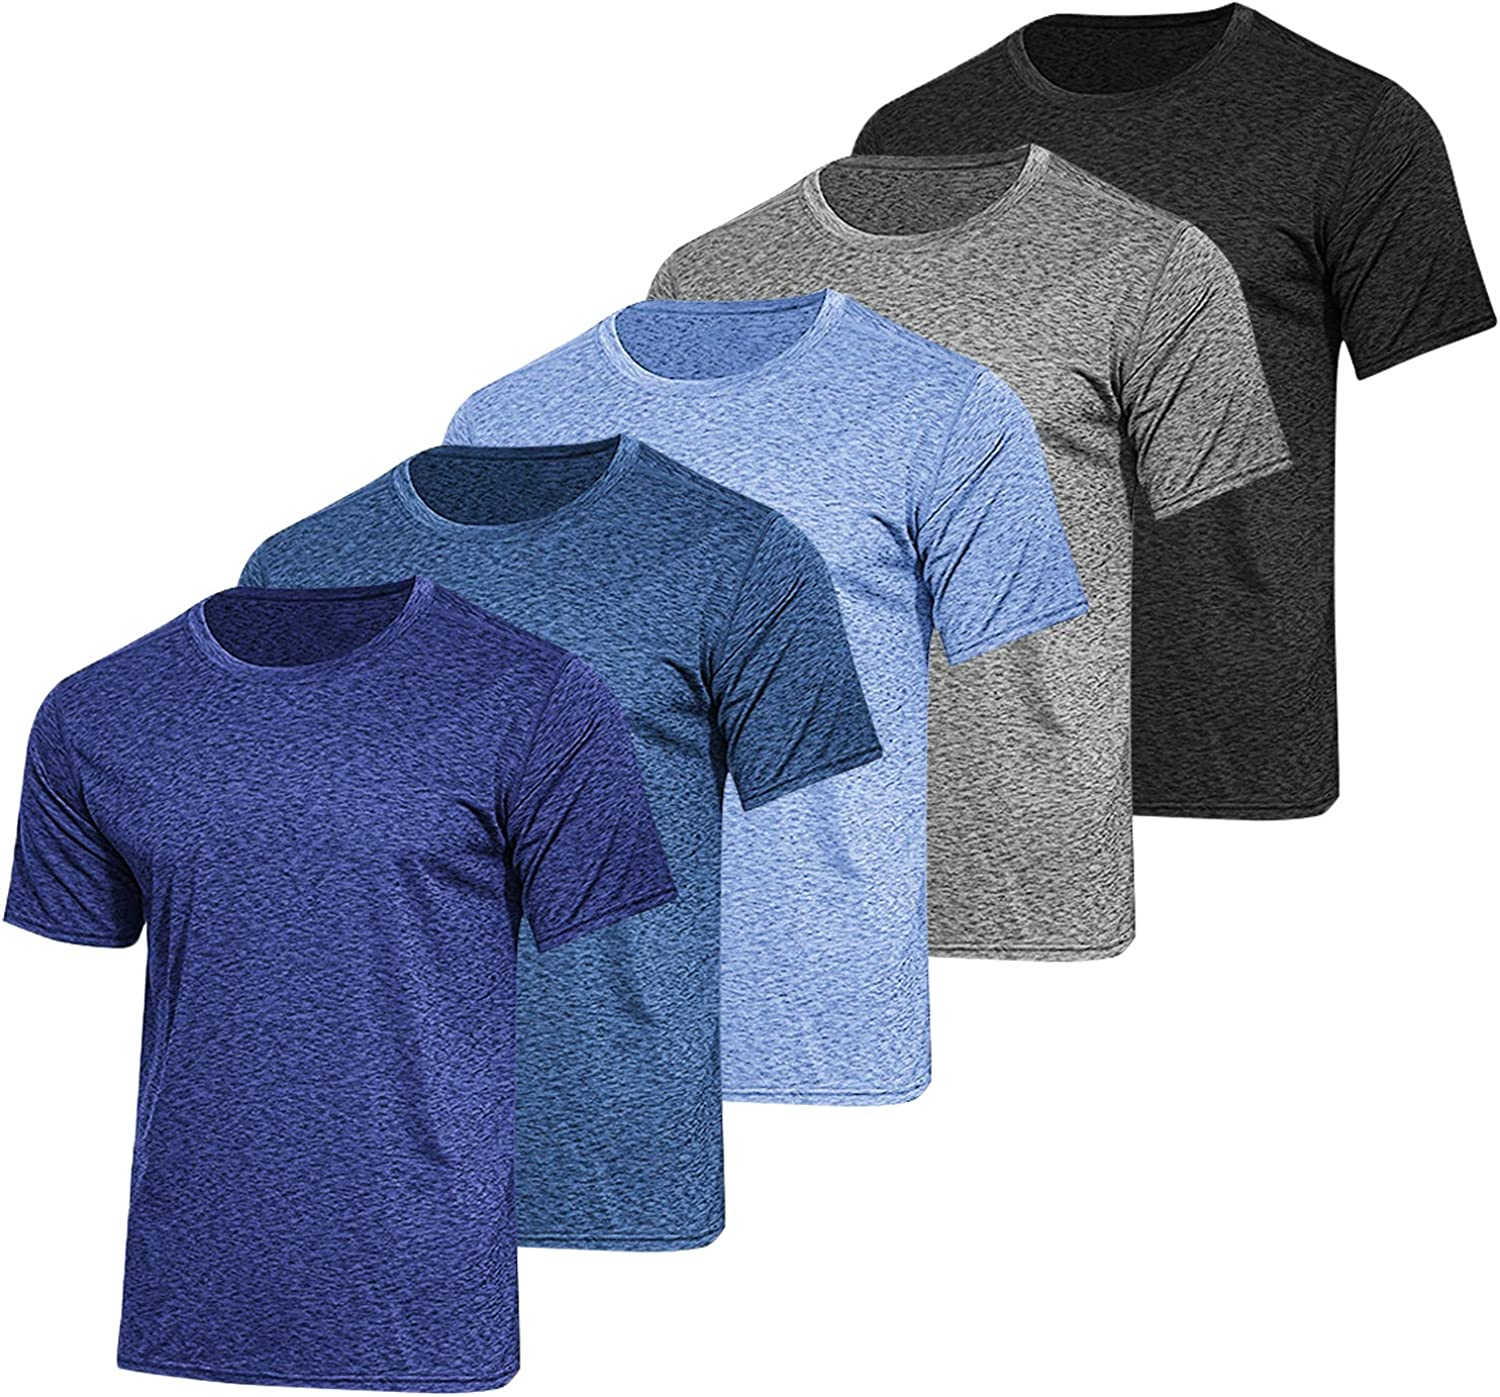 Don't miss the campaign COOFANDY Men's 5 Pack Athletic T Training New York Mall Short Sleeve Ru Shirts